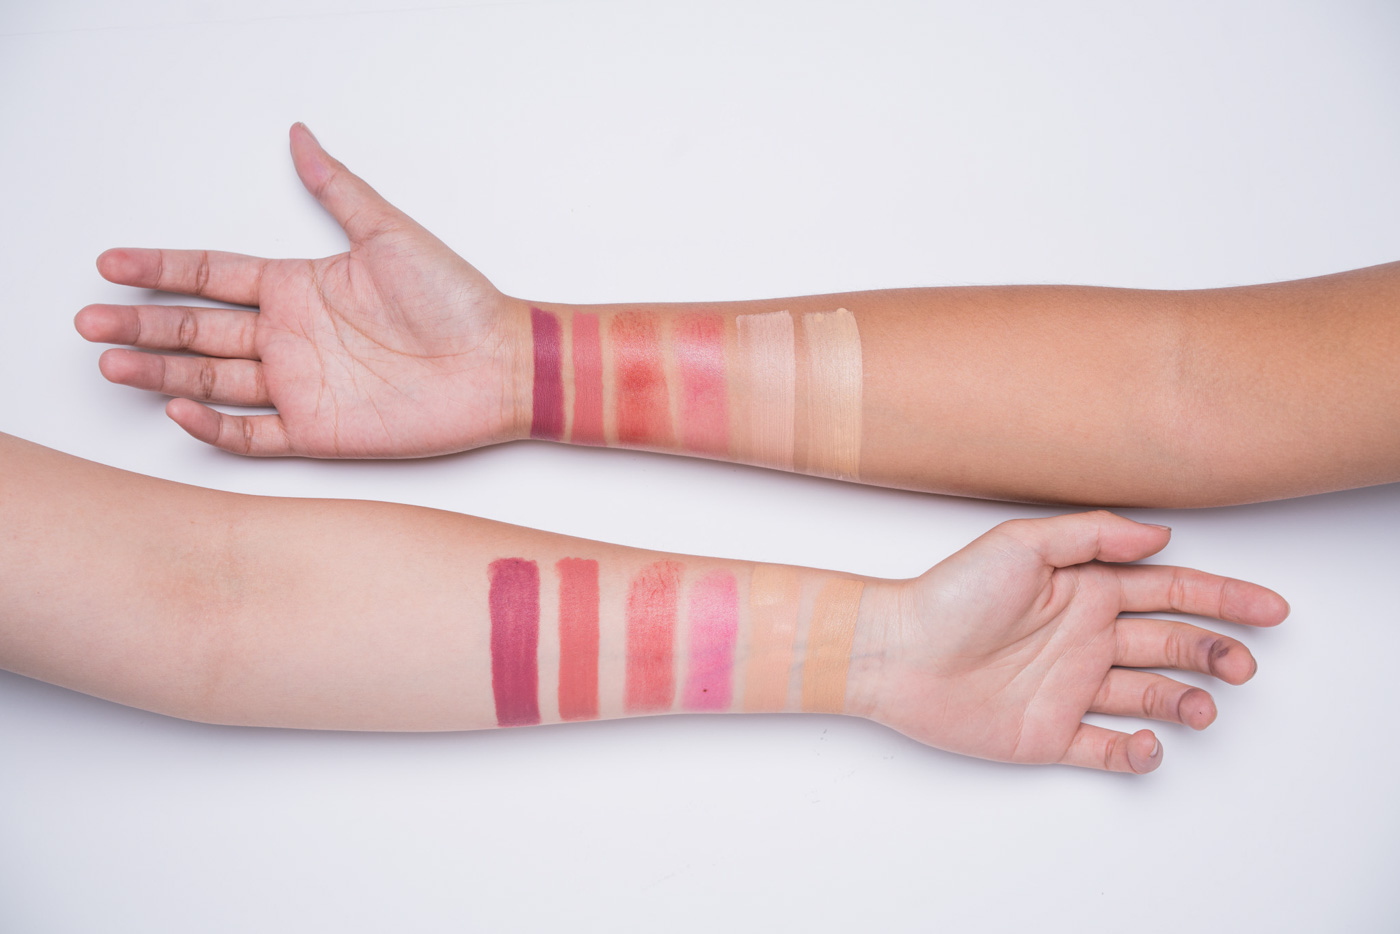 SWATCHES. Left to right: Shut Up u0026 Kiss Me Moisturizing Matte Lippie in Forever Summer; Shut Up u0026 Kiss Me Moisturizing Matte Lippie in Lost in Paradise; Pinch Me Summer-Proof Natural Lip u0026 Cheek Stick in Cherry Glow; Pinch Me Summer-Proof Natural Lip u0026 Cheek Stick in Berry Fresh; Good To Go Five Minute Fresh Face Summer-Proof Foundation u0026 Concealer in Medium; Good To Go Five Minute Fresh Face Summer-Proof Foundation u0026 Concealer in Light.